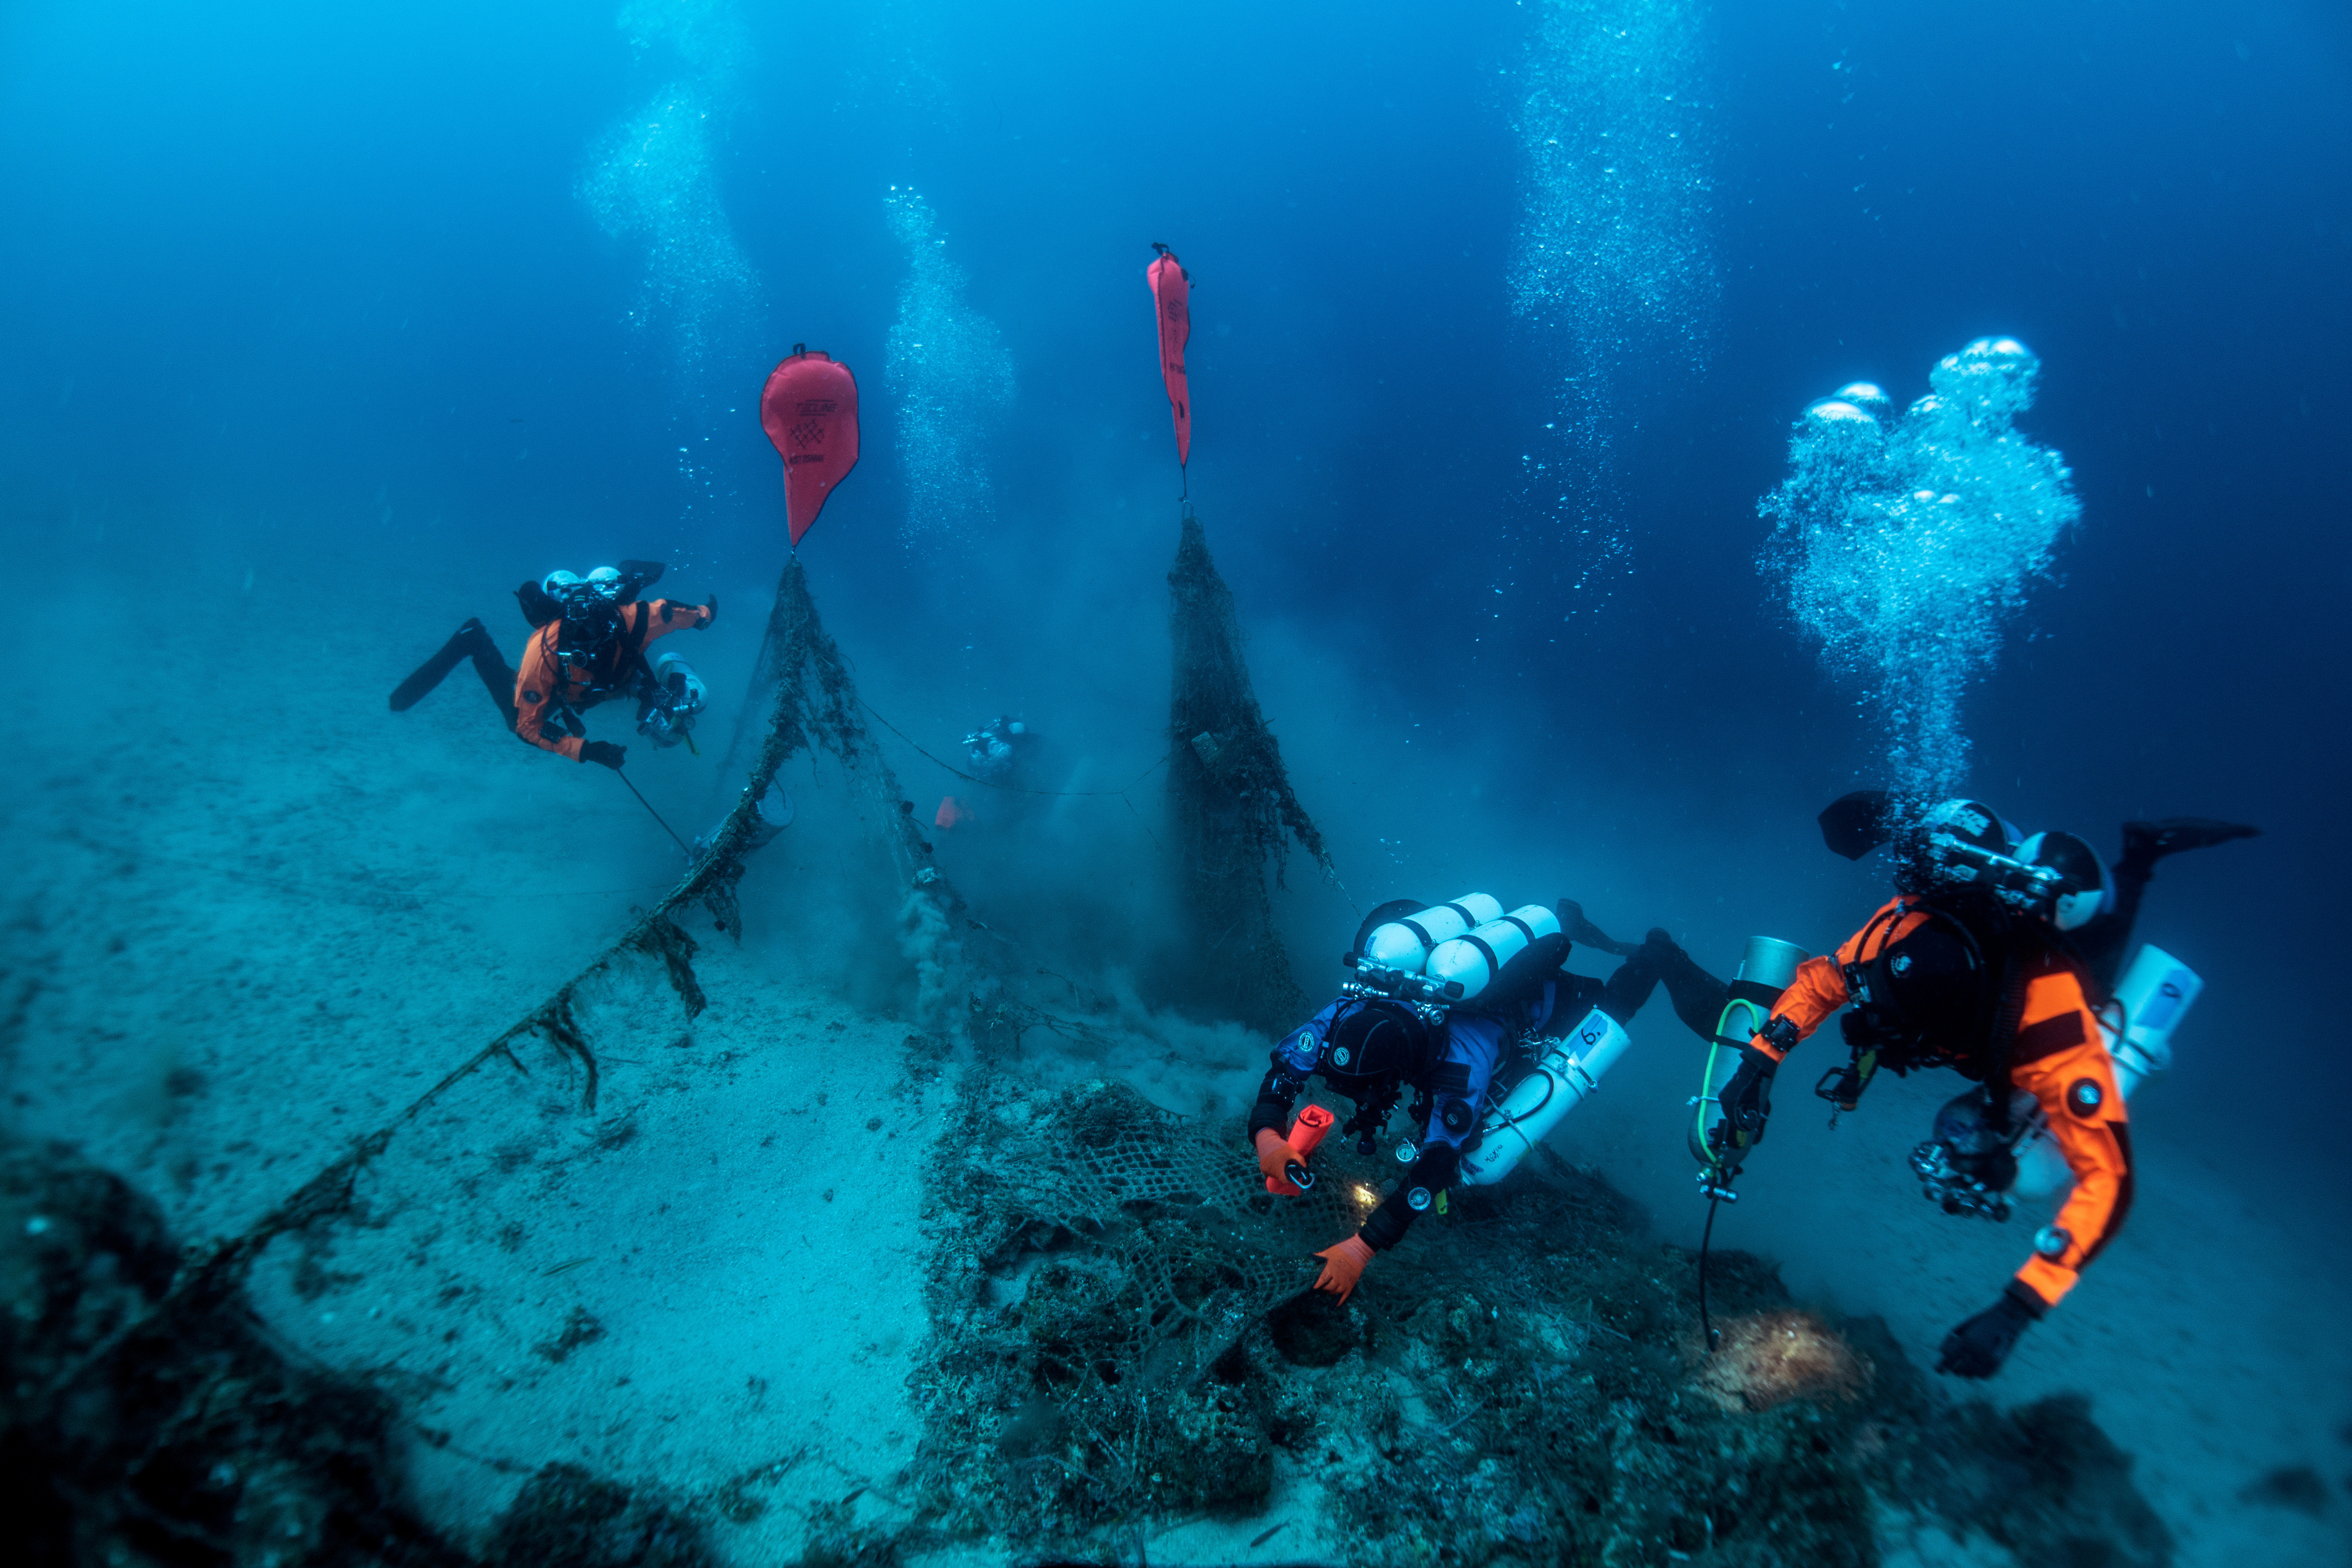 A group of underwater drivers excavate a shipwreck